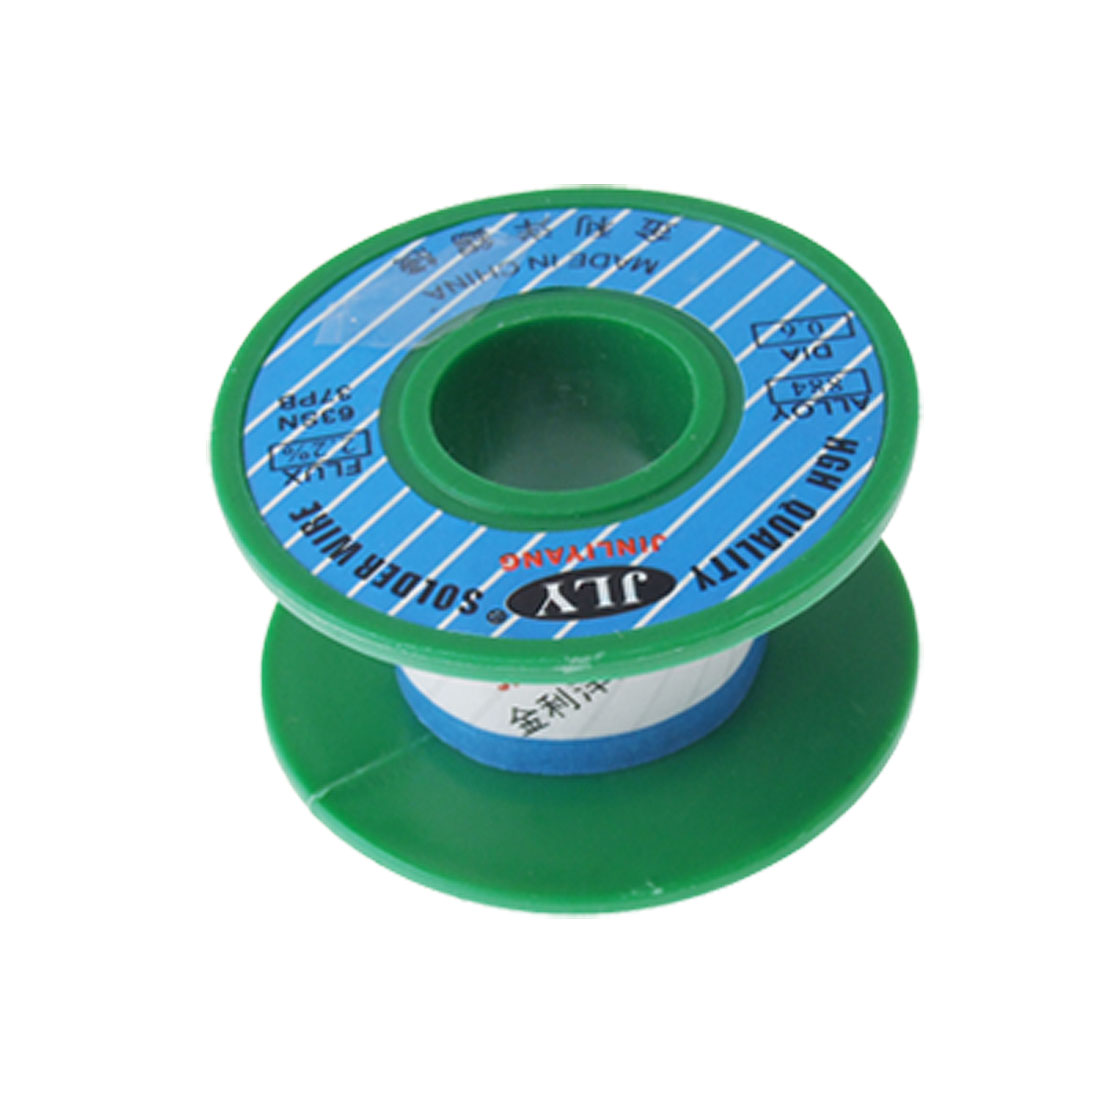 0.6mm Diameter 63/37 Rosin Core Flux 2.2% Tin Lead Roll Solid Solder Wire Reel